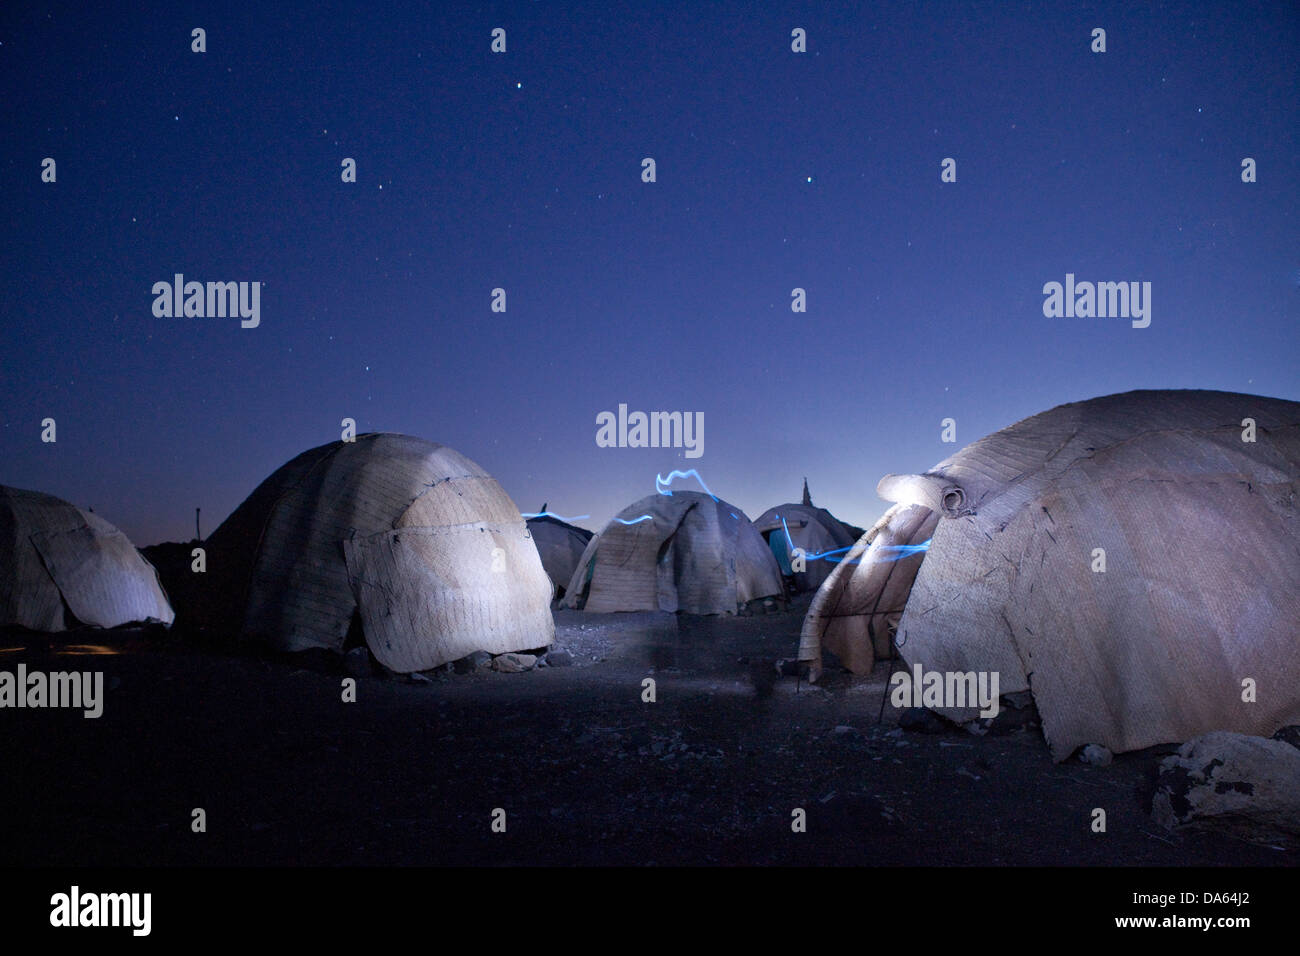 Afar, tent, Abbesee, Djibouti, Africa, agriculture, tourism, holidays, night, - Stock Image